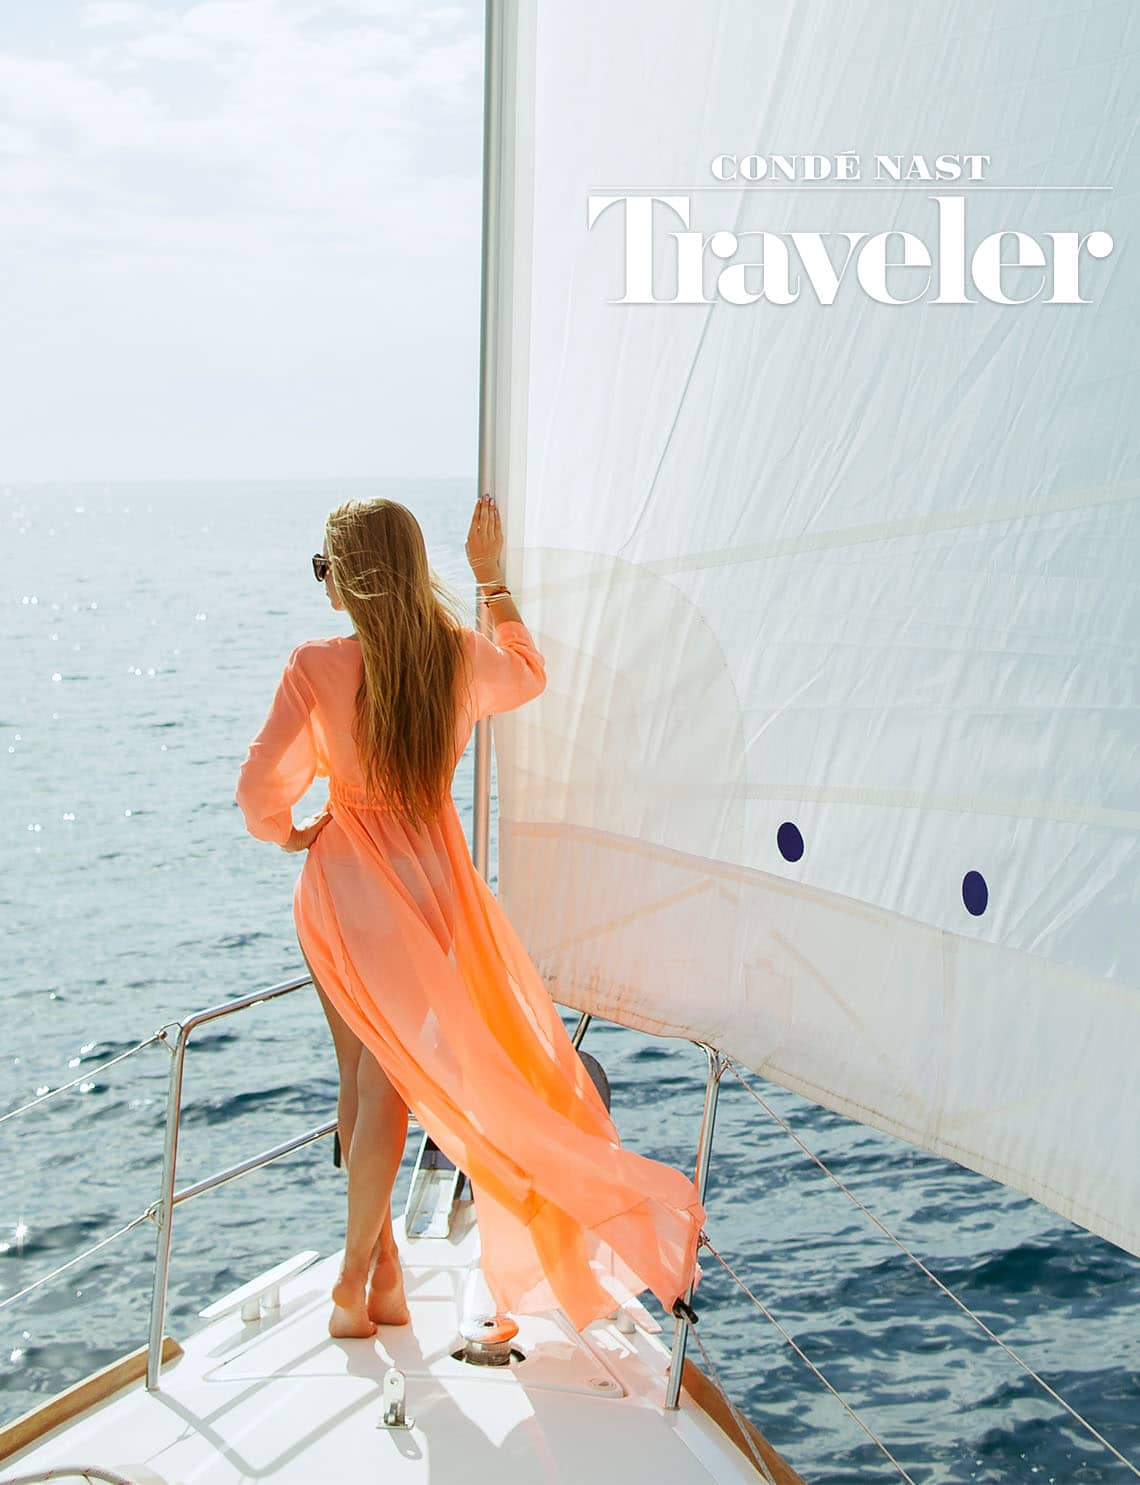 Advertise locally in Conde Nast Traveler in more than 100 markets across the U.S.